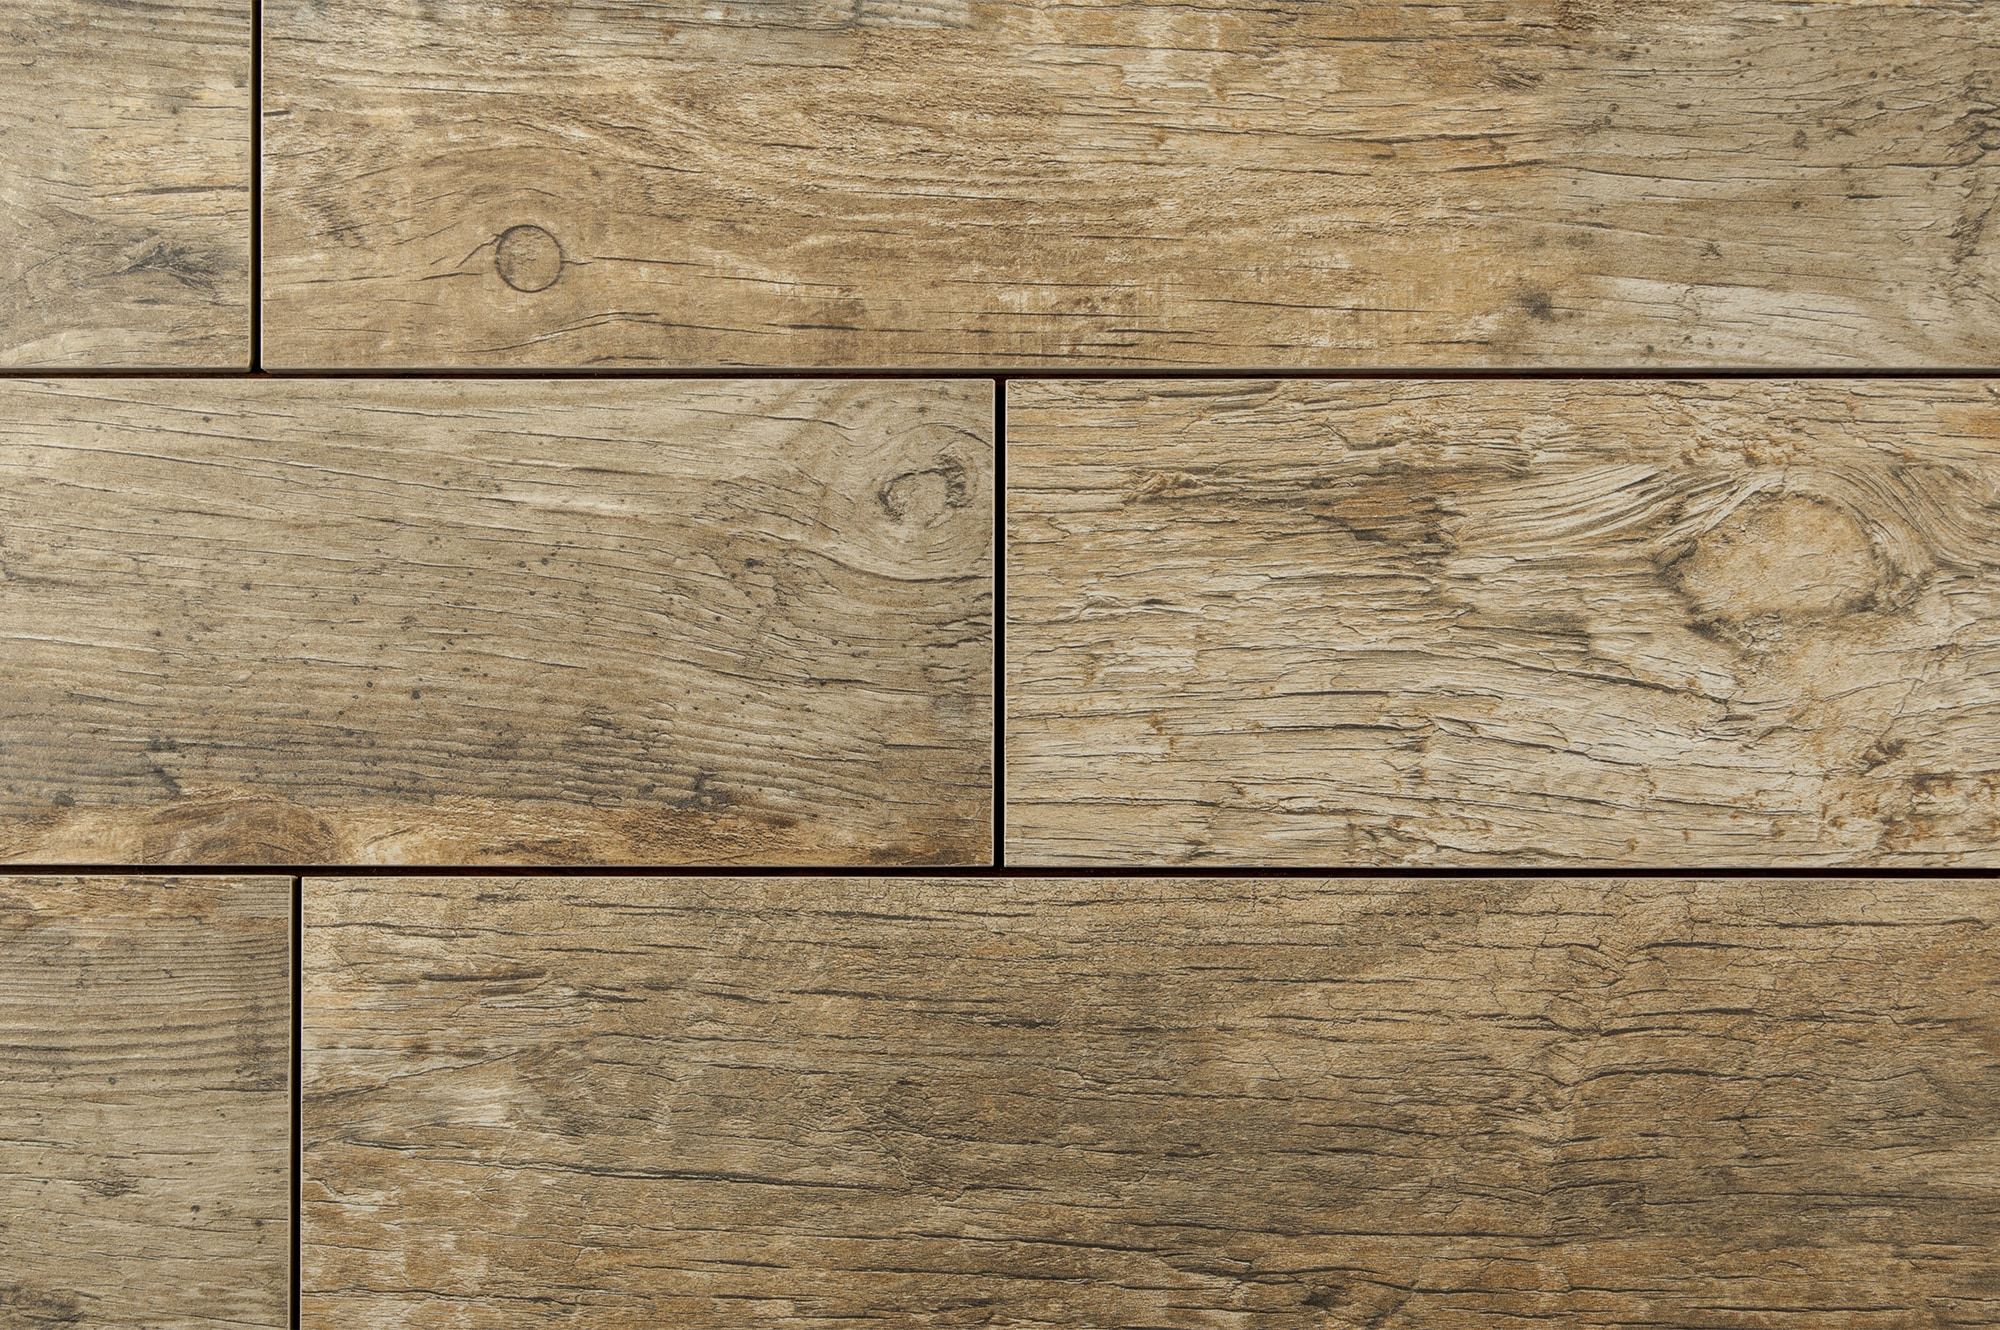 Free samples cabot porcelain tile redwood series natural 6x24 dailygadgetfo Choice Image